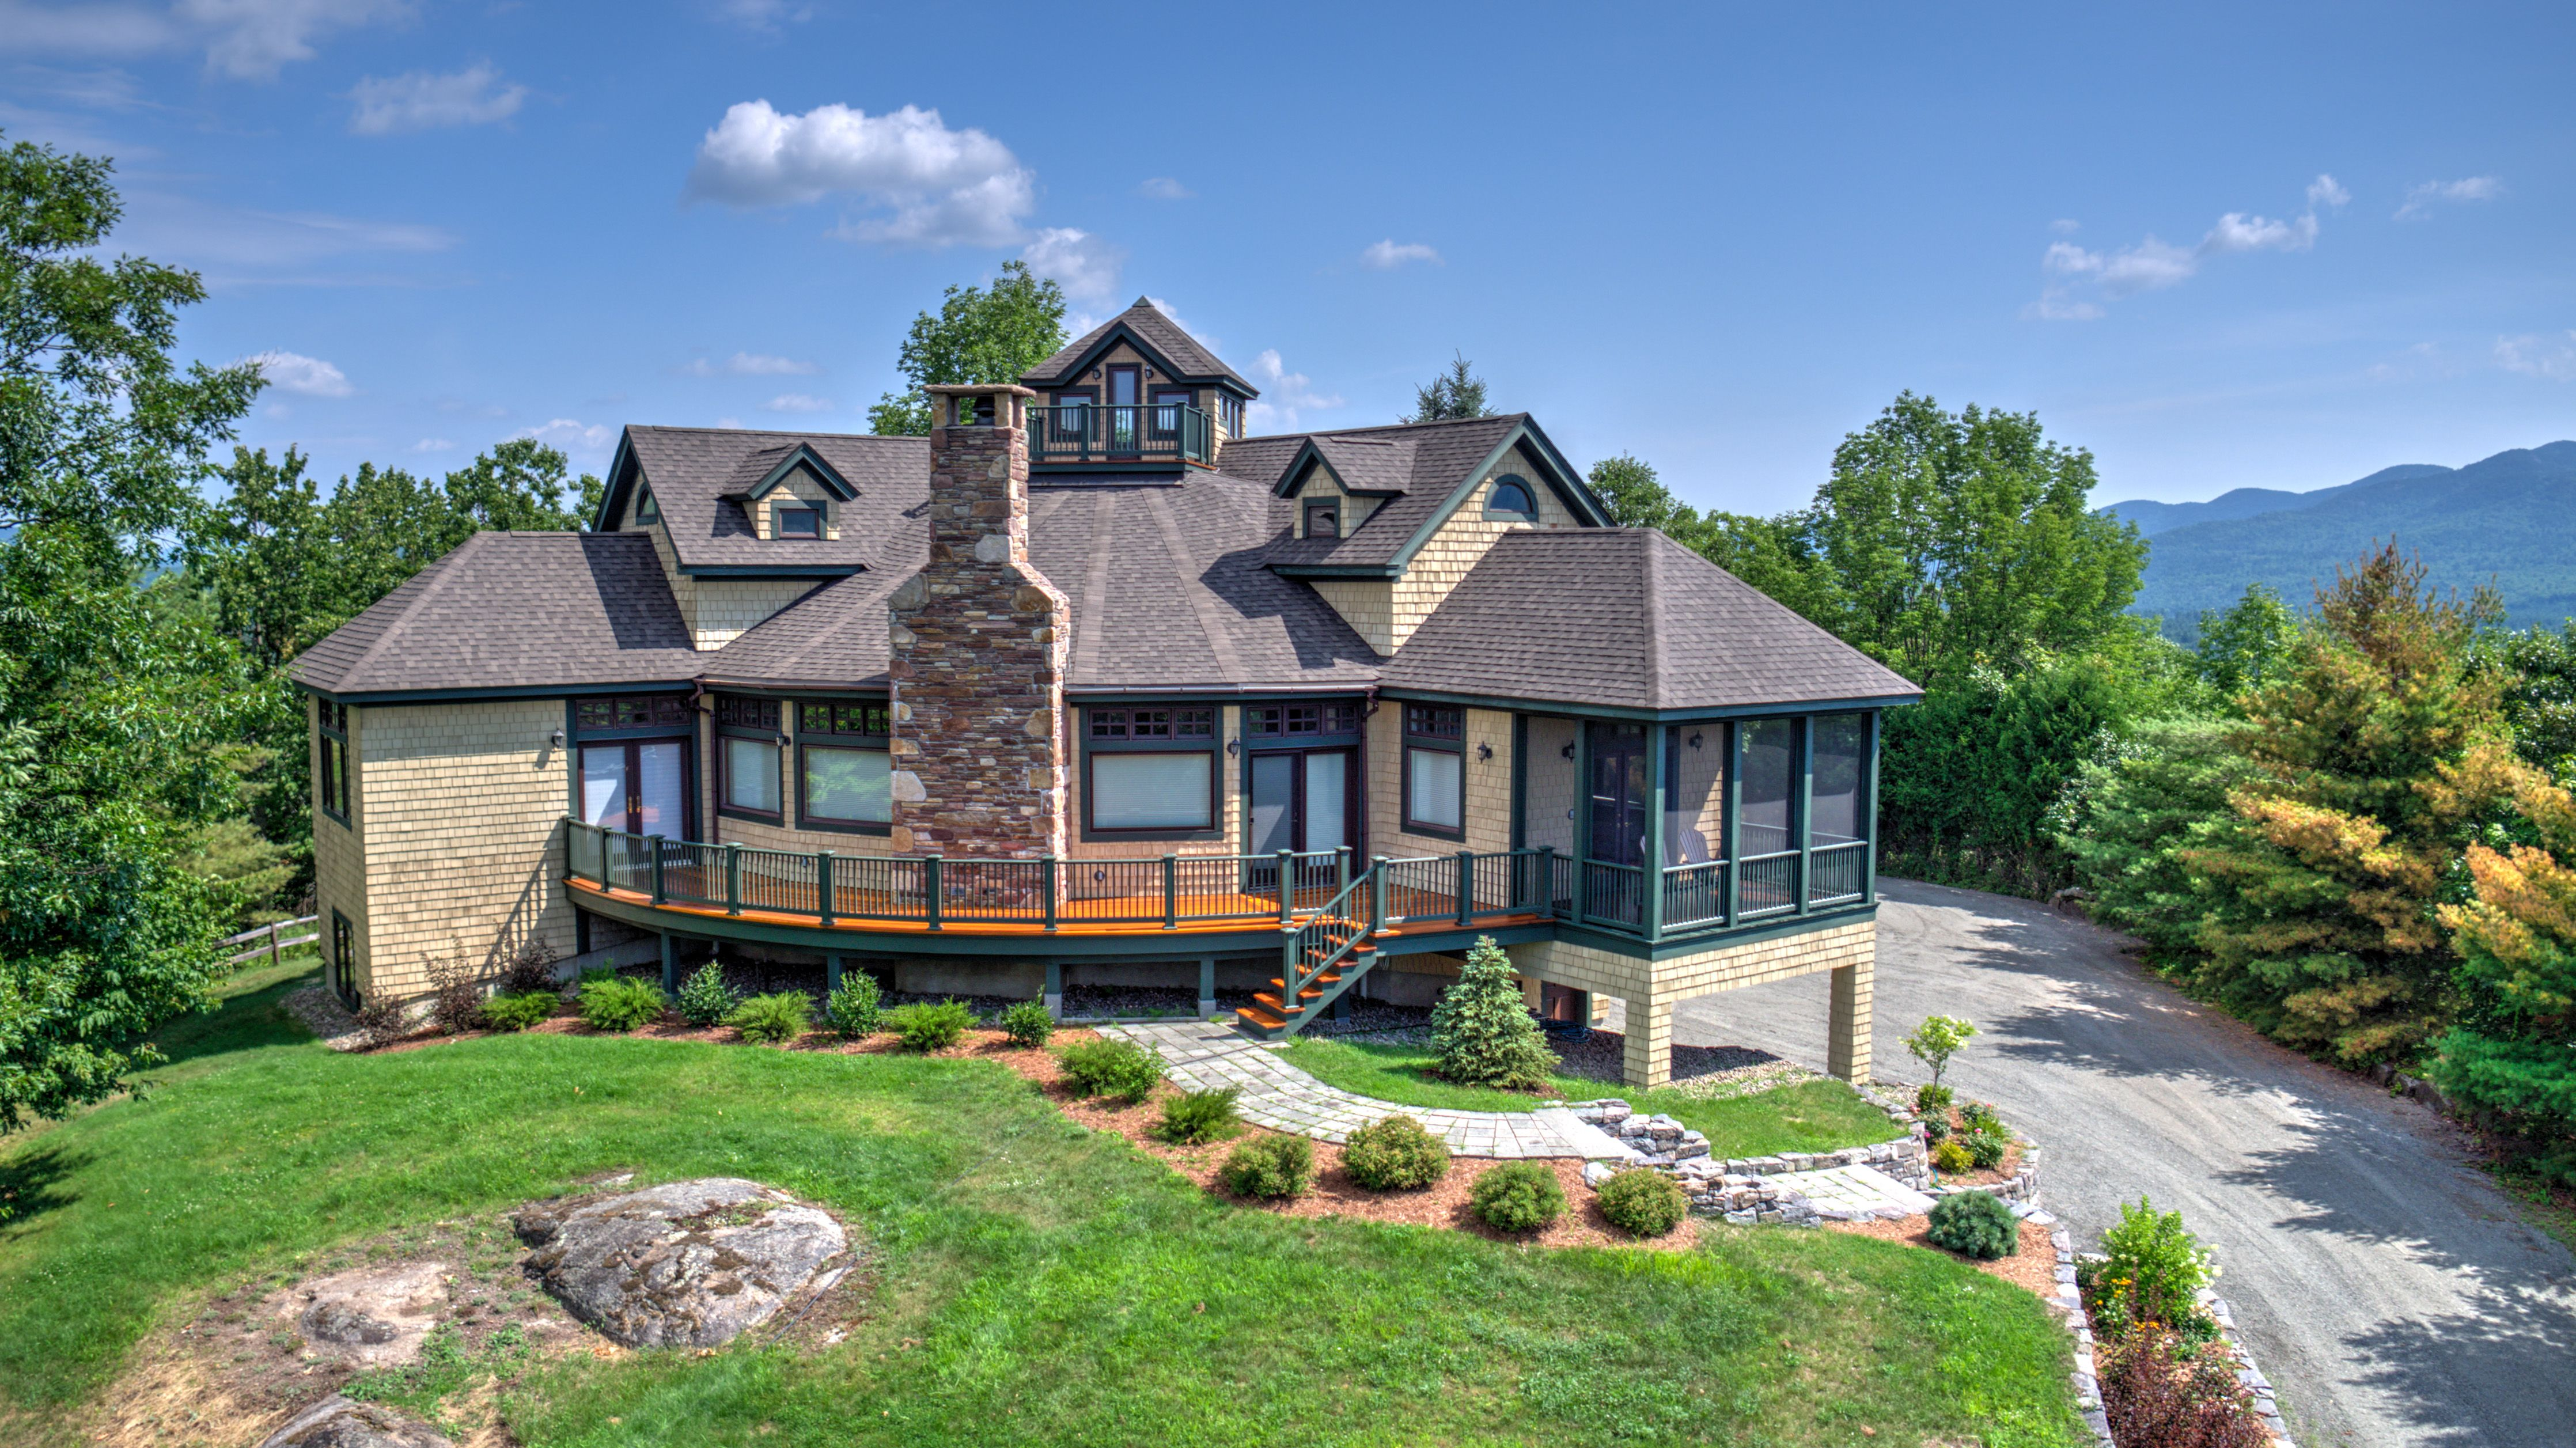 Whatever you are searching for is here one story homes luxury home - Veith Mountain Jay Ny Veith Mountain Custom Home